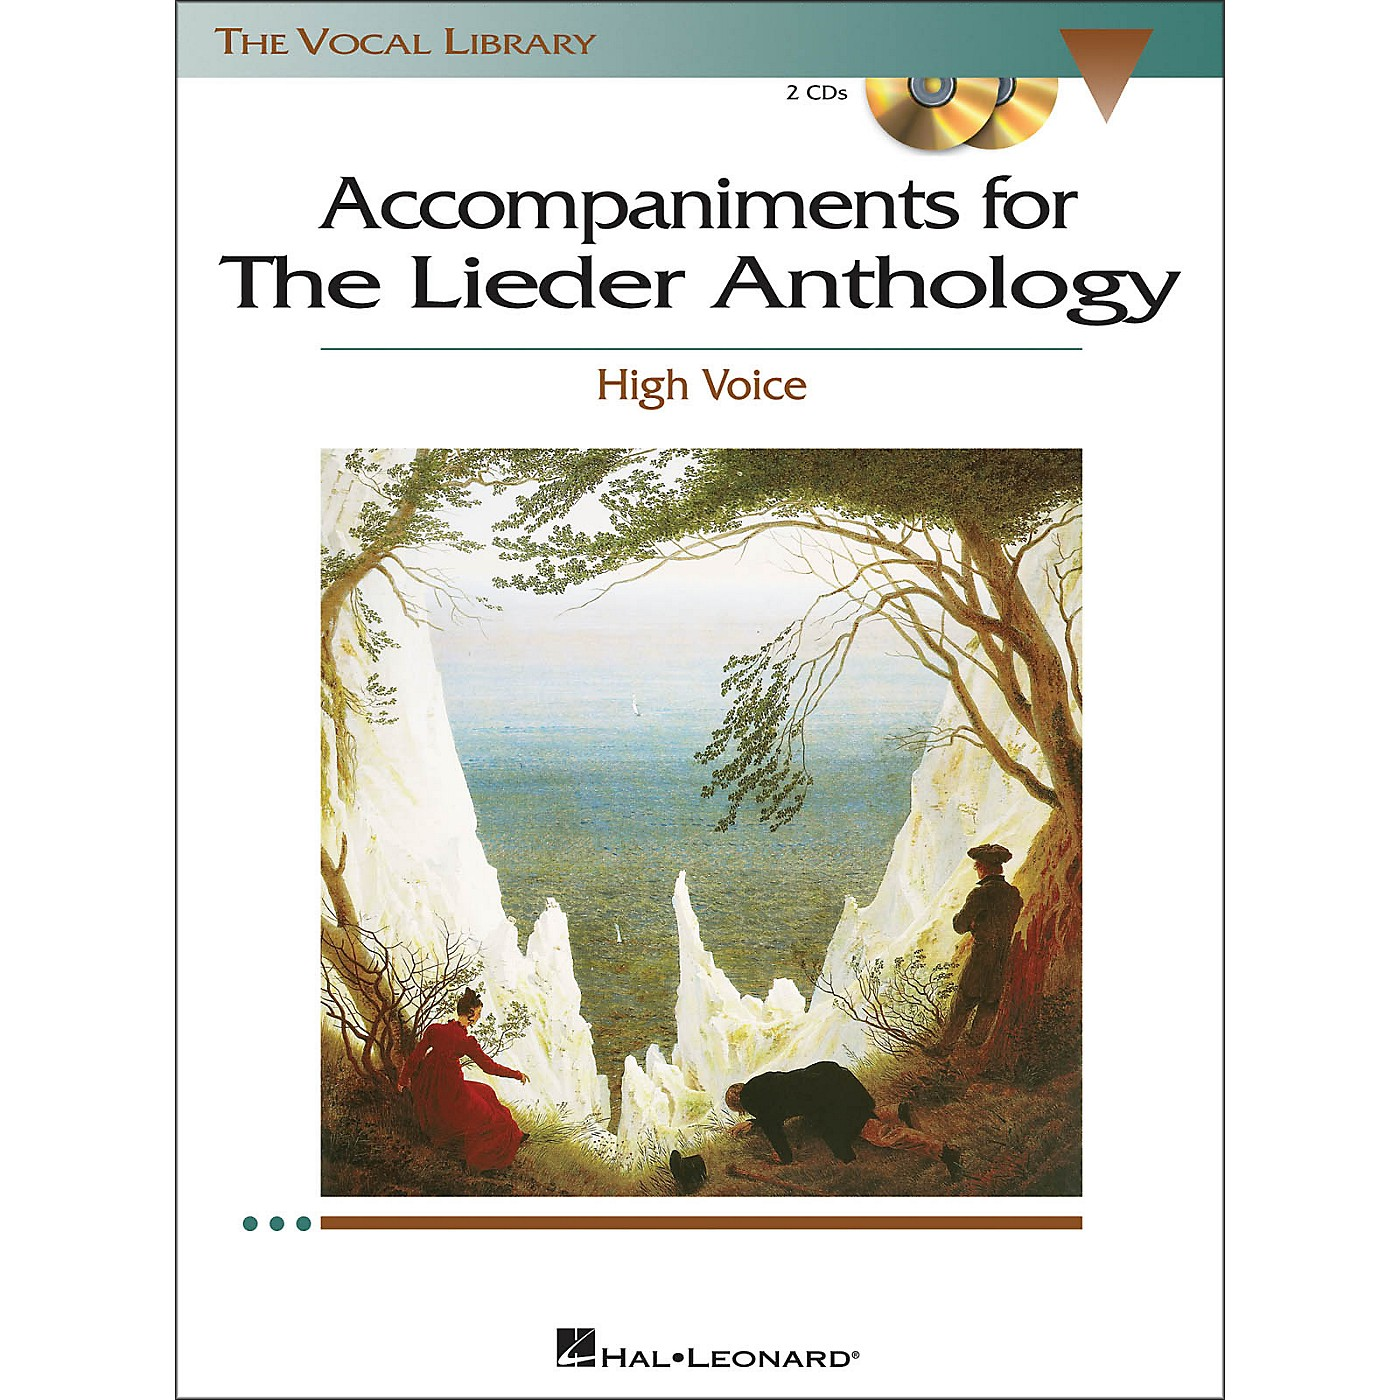 Hal Leonard Accompaniments for The Lieder Anthology for High Voice 2CD's thumbnail